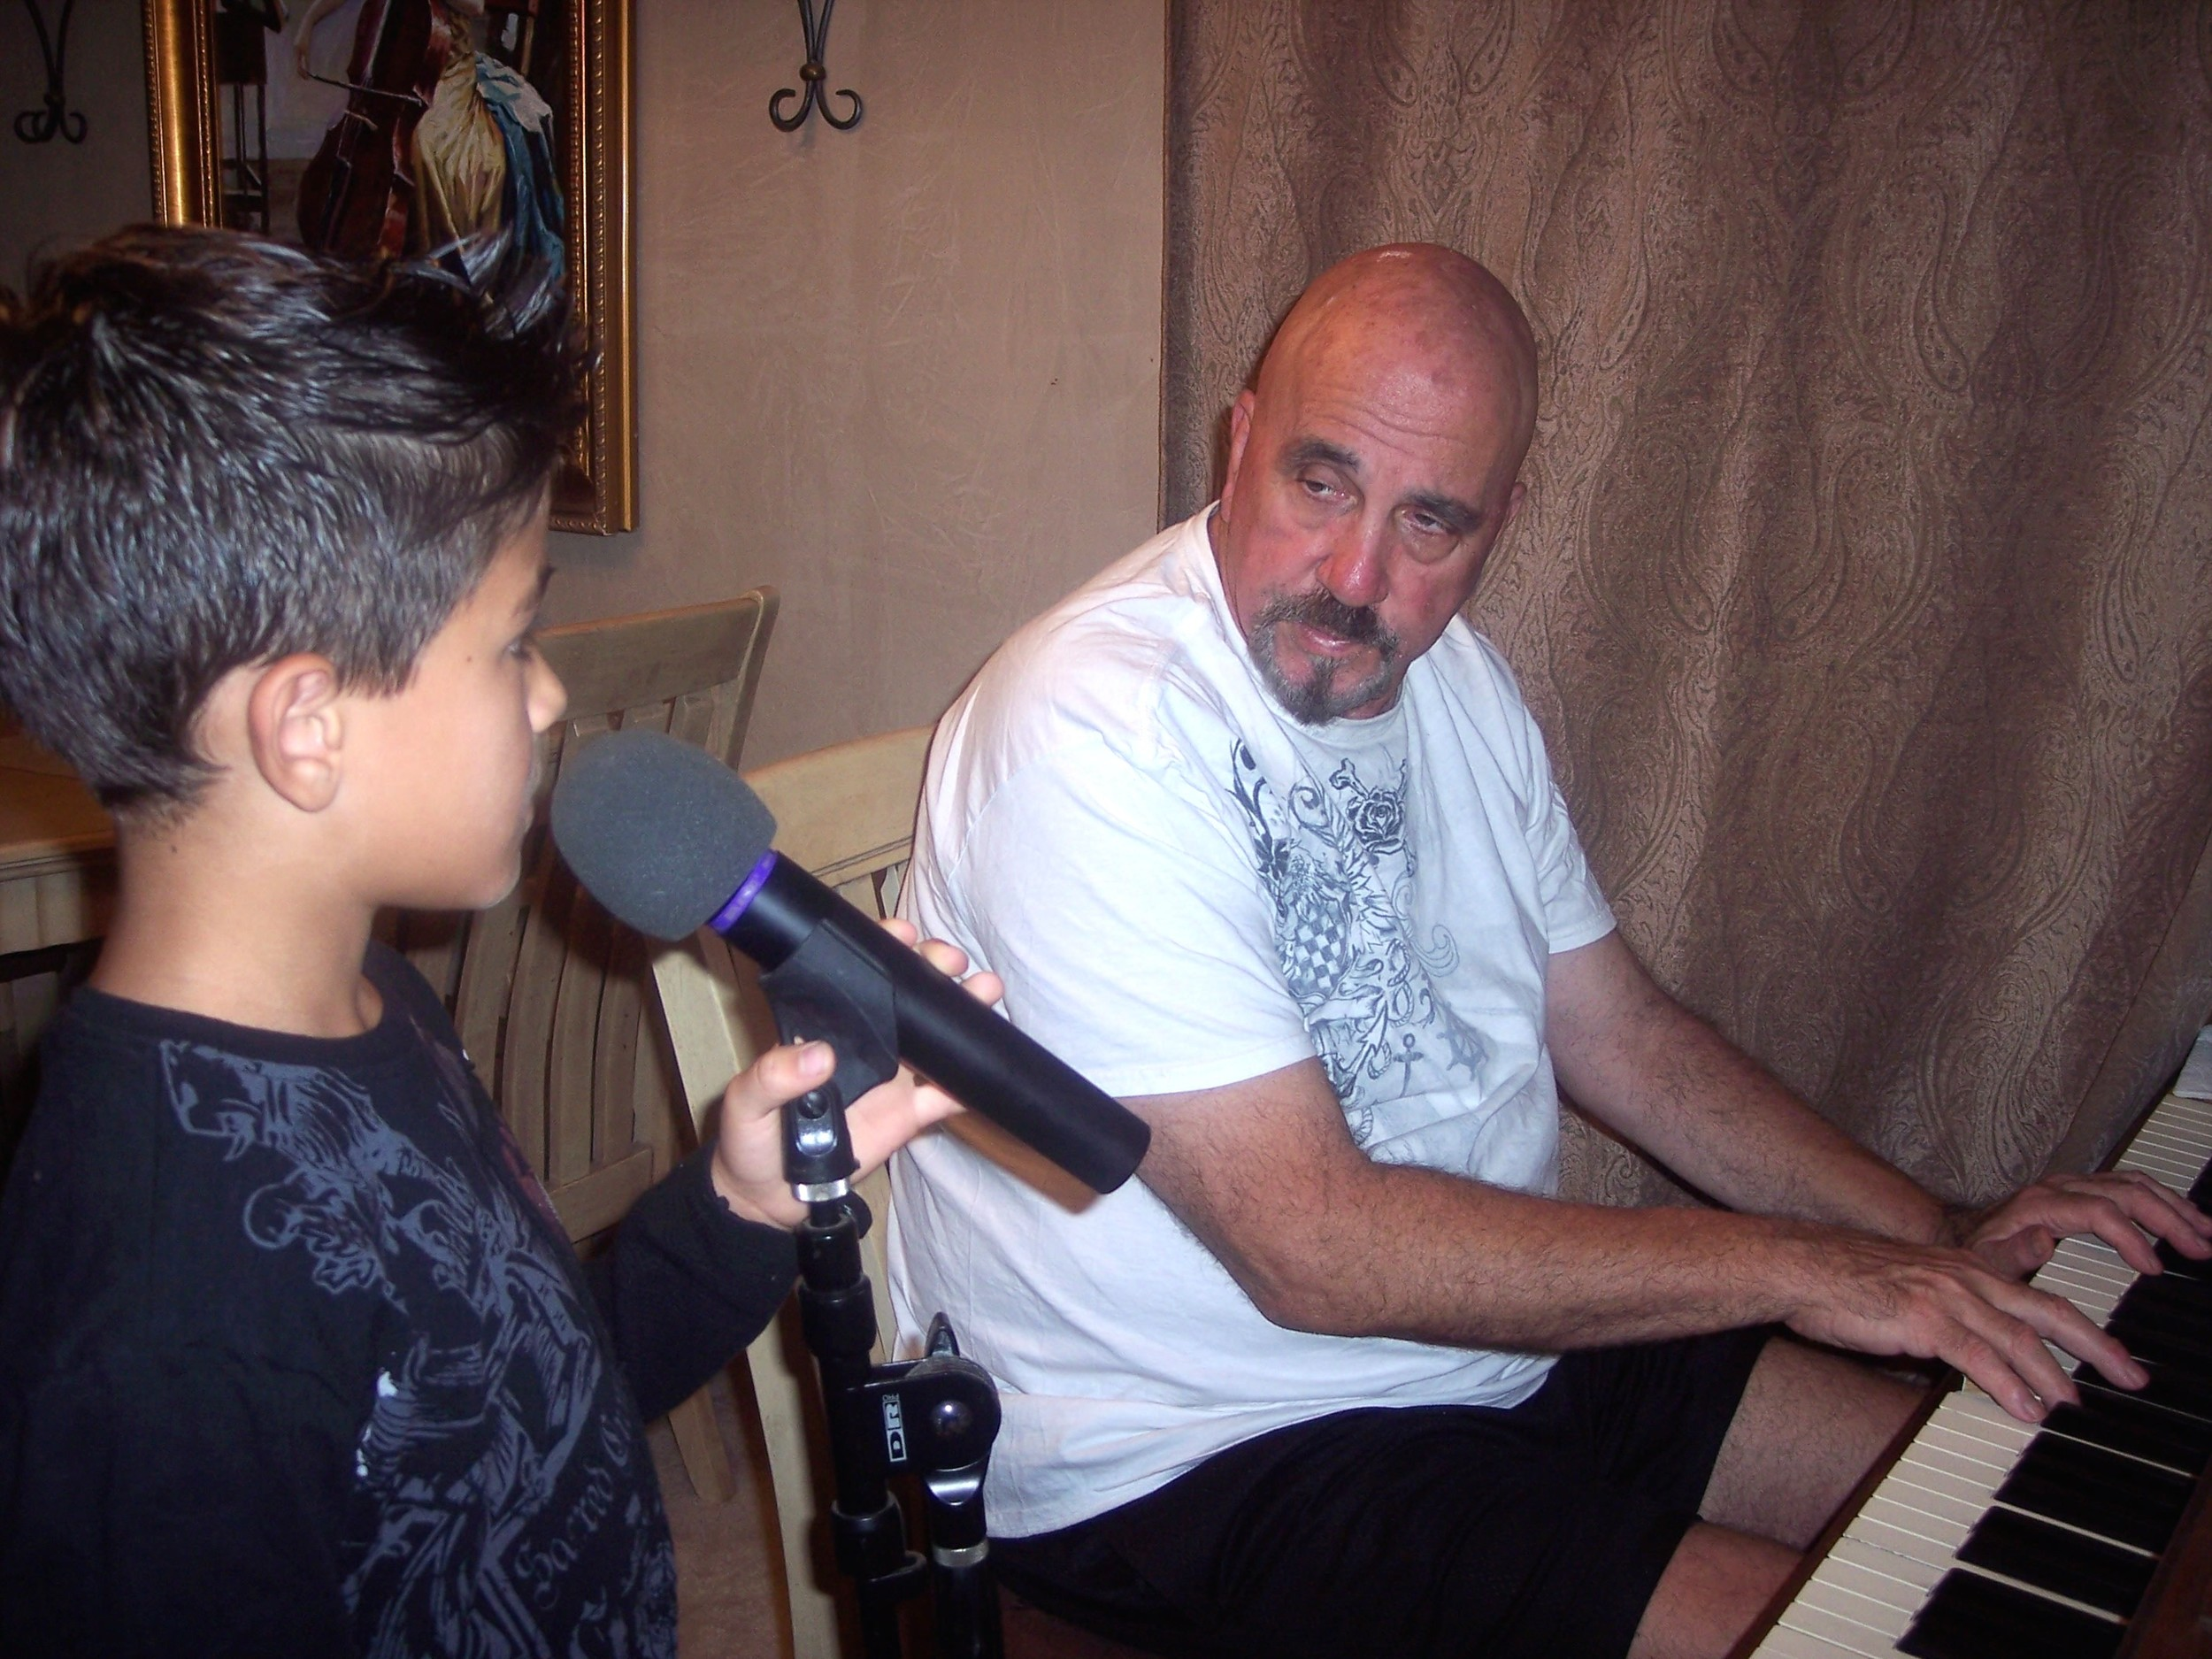 TECMEF founder Rich Pulin and grandson Jovanny working on song